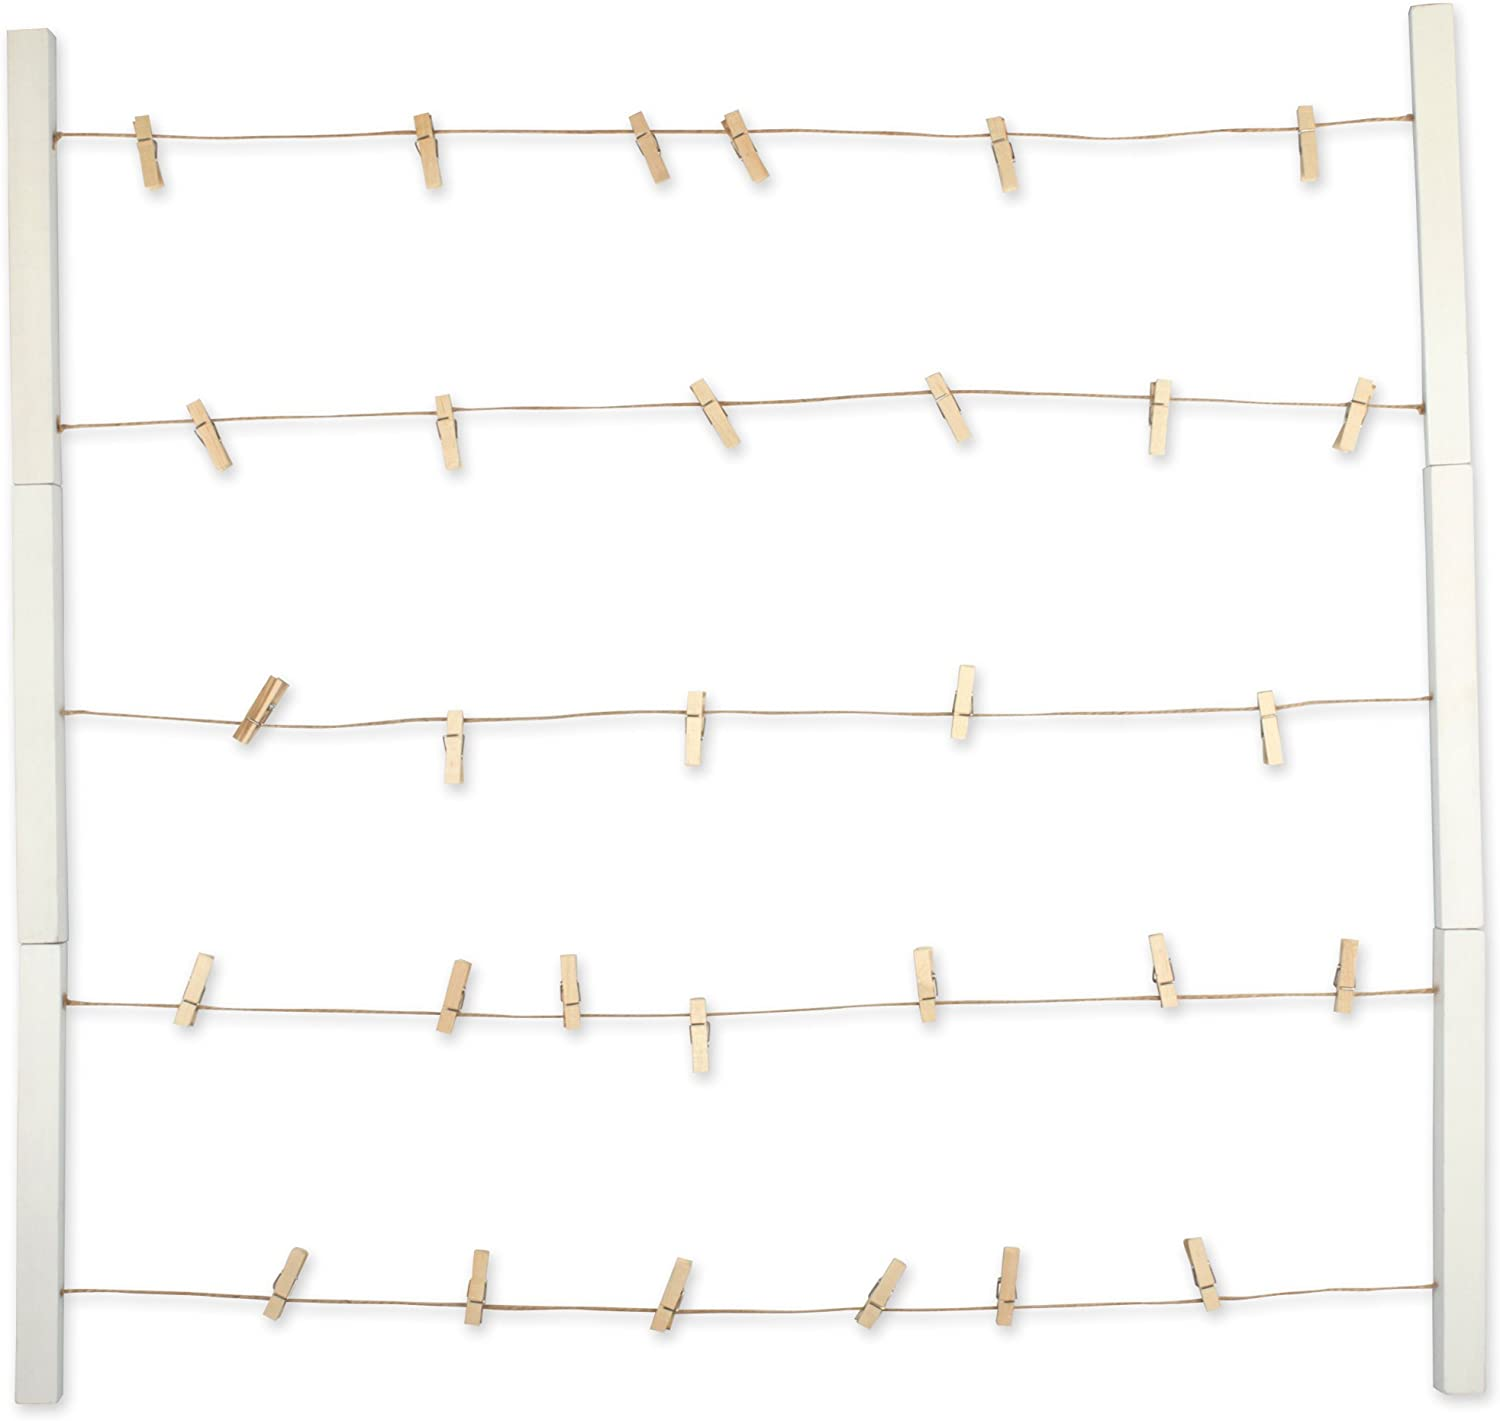 DII Home Traditions Floating Photo Display DIY Photo Collage Set with Twine Clothesline, Natural Wood Wall Mounts, and 30 Wooden Clothespin Clips for Hanging Photos, Prints, and Art - Rustic White